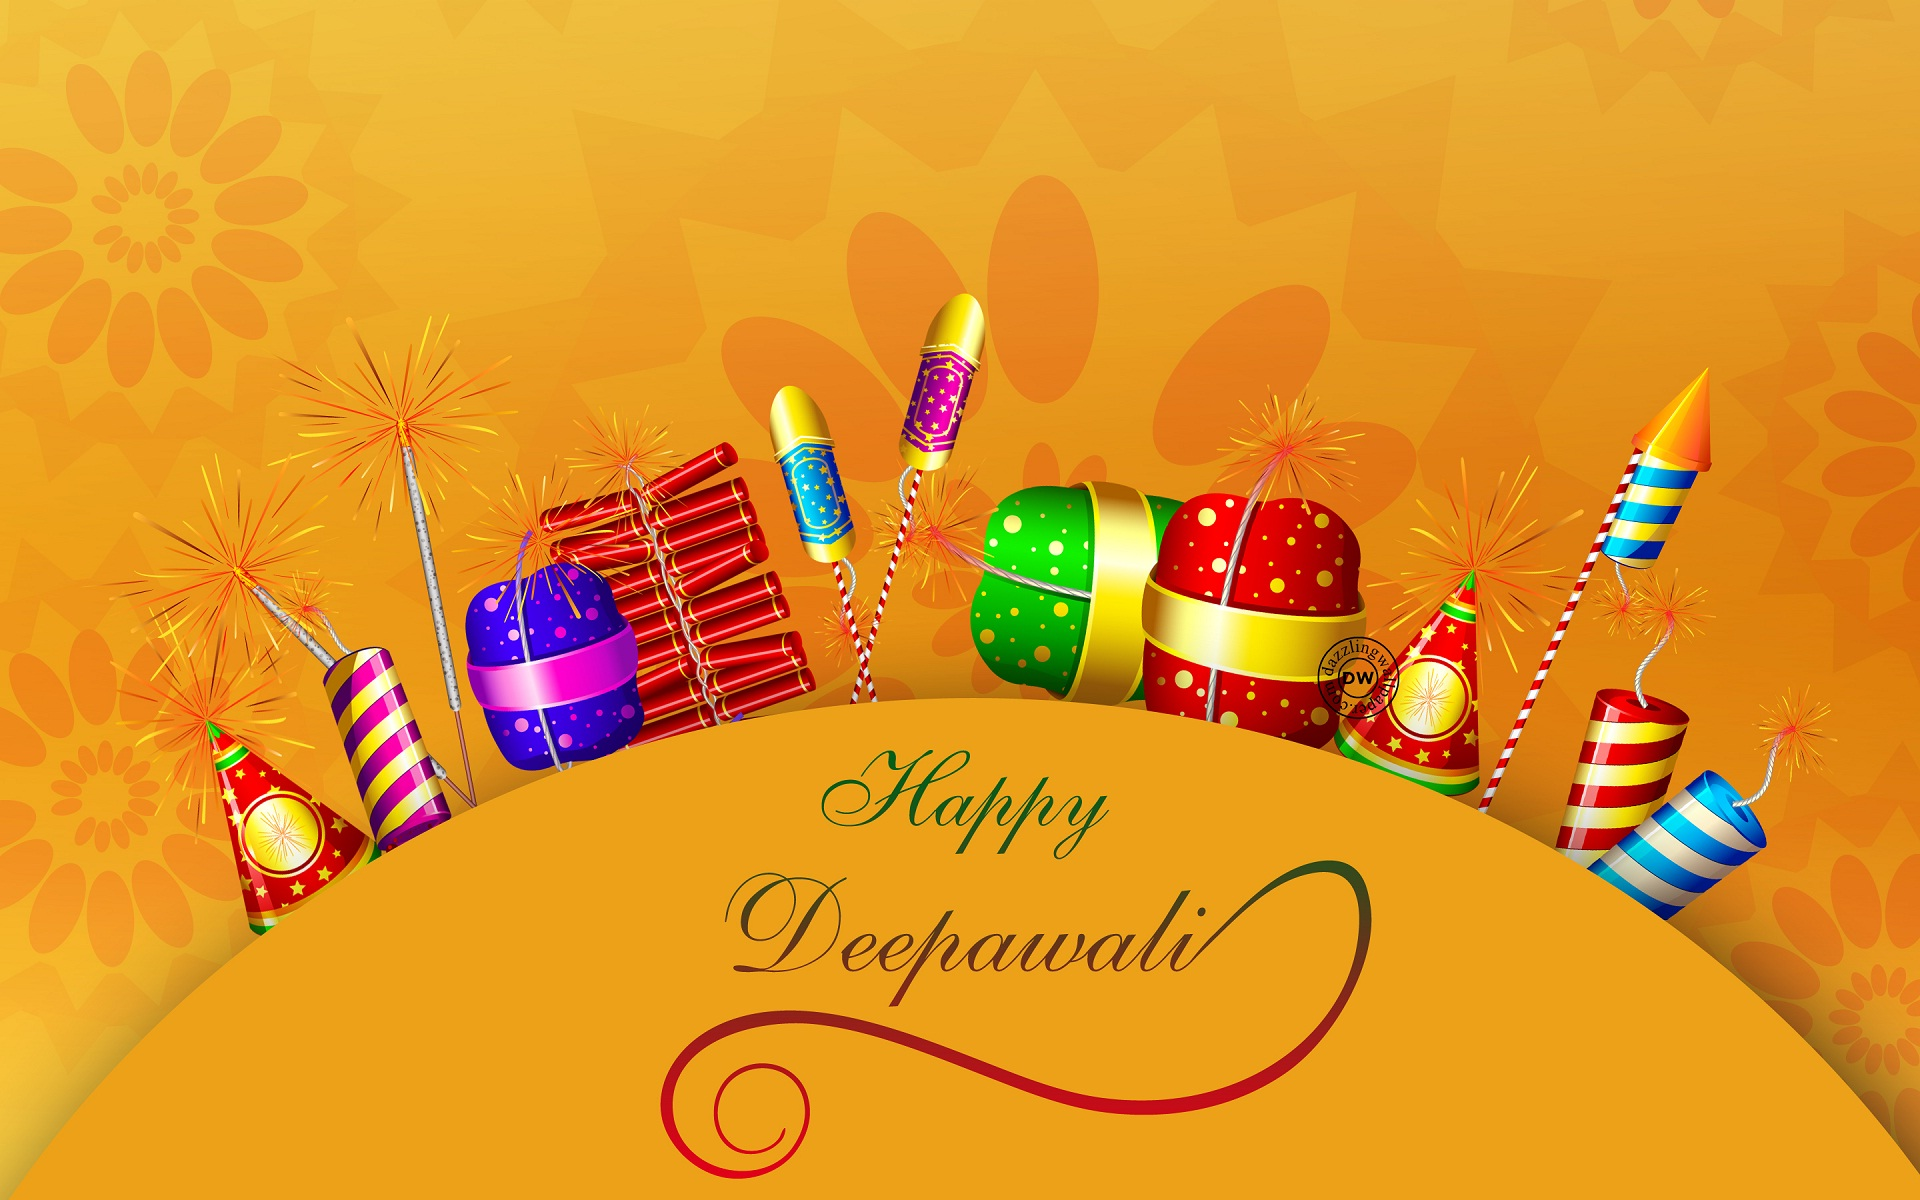 Happy diwali 2017 images quotes wishes sms greetings messages diwali fireworks images kristyandbryce Images